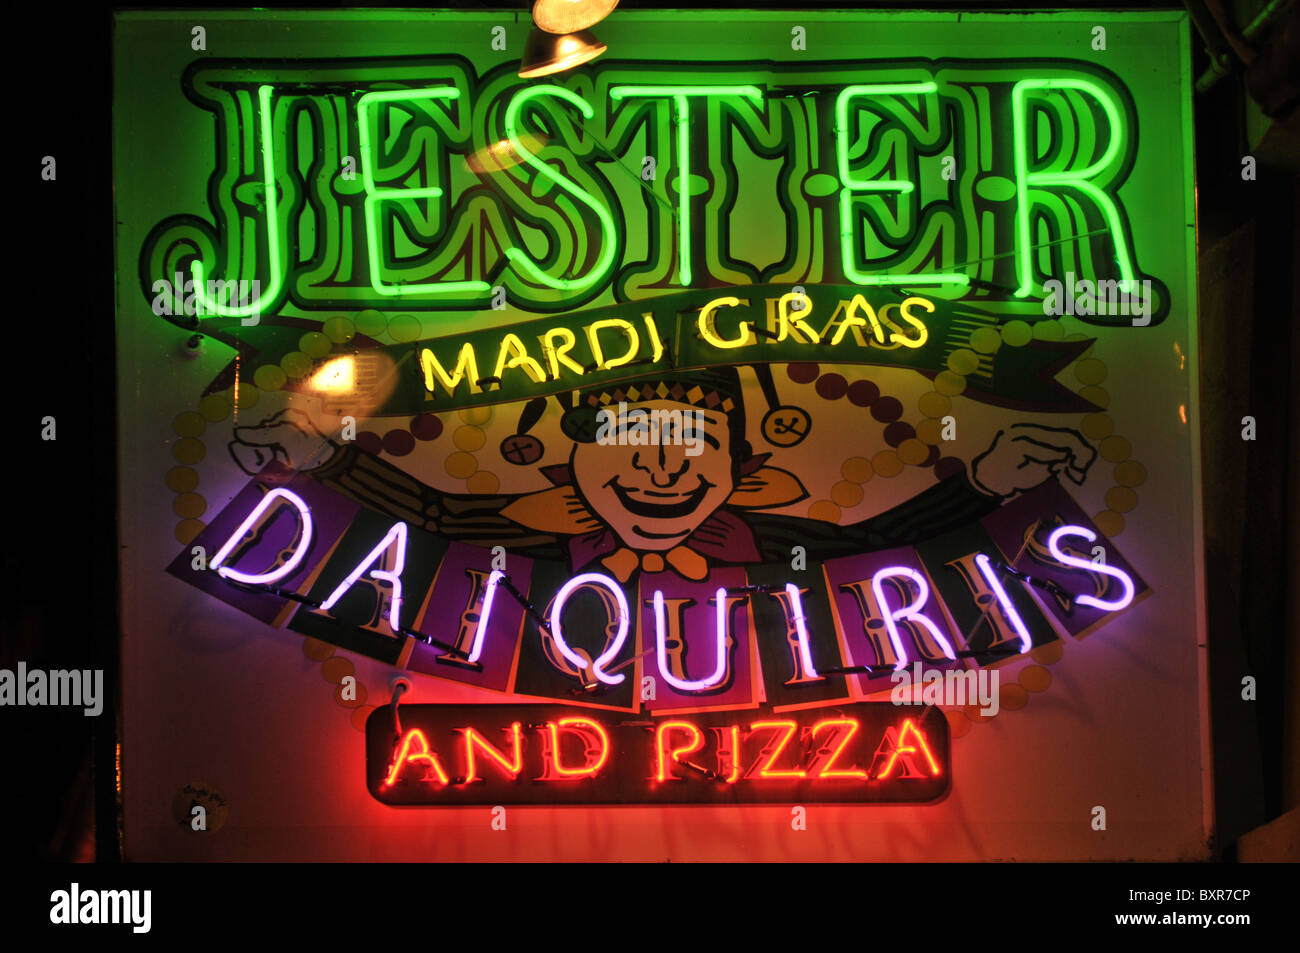 Restaurant Sign New Orleans Stock Photos Amp Restaurant Sign